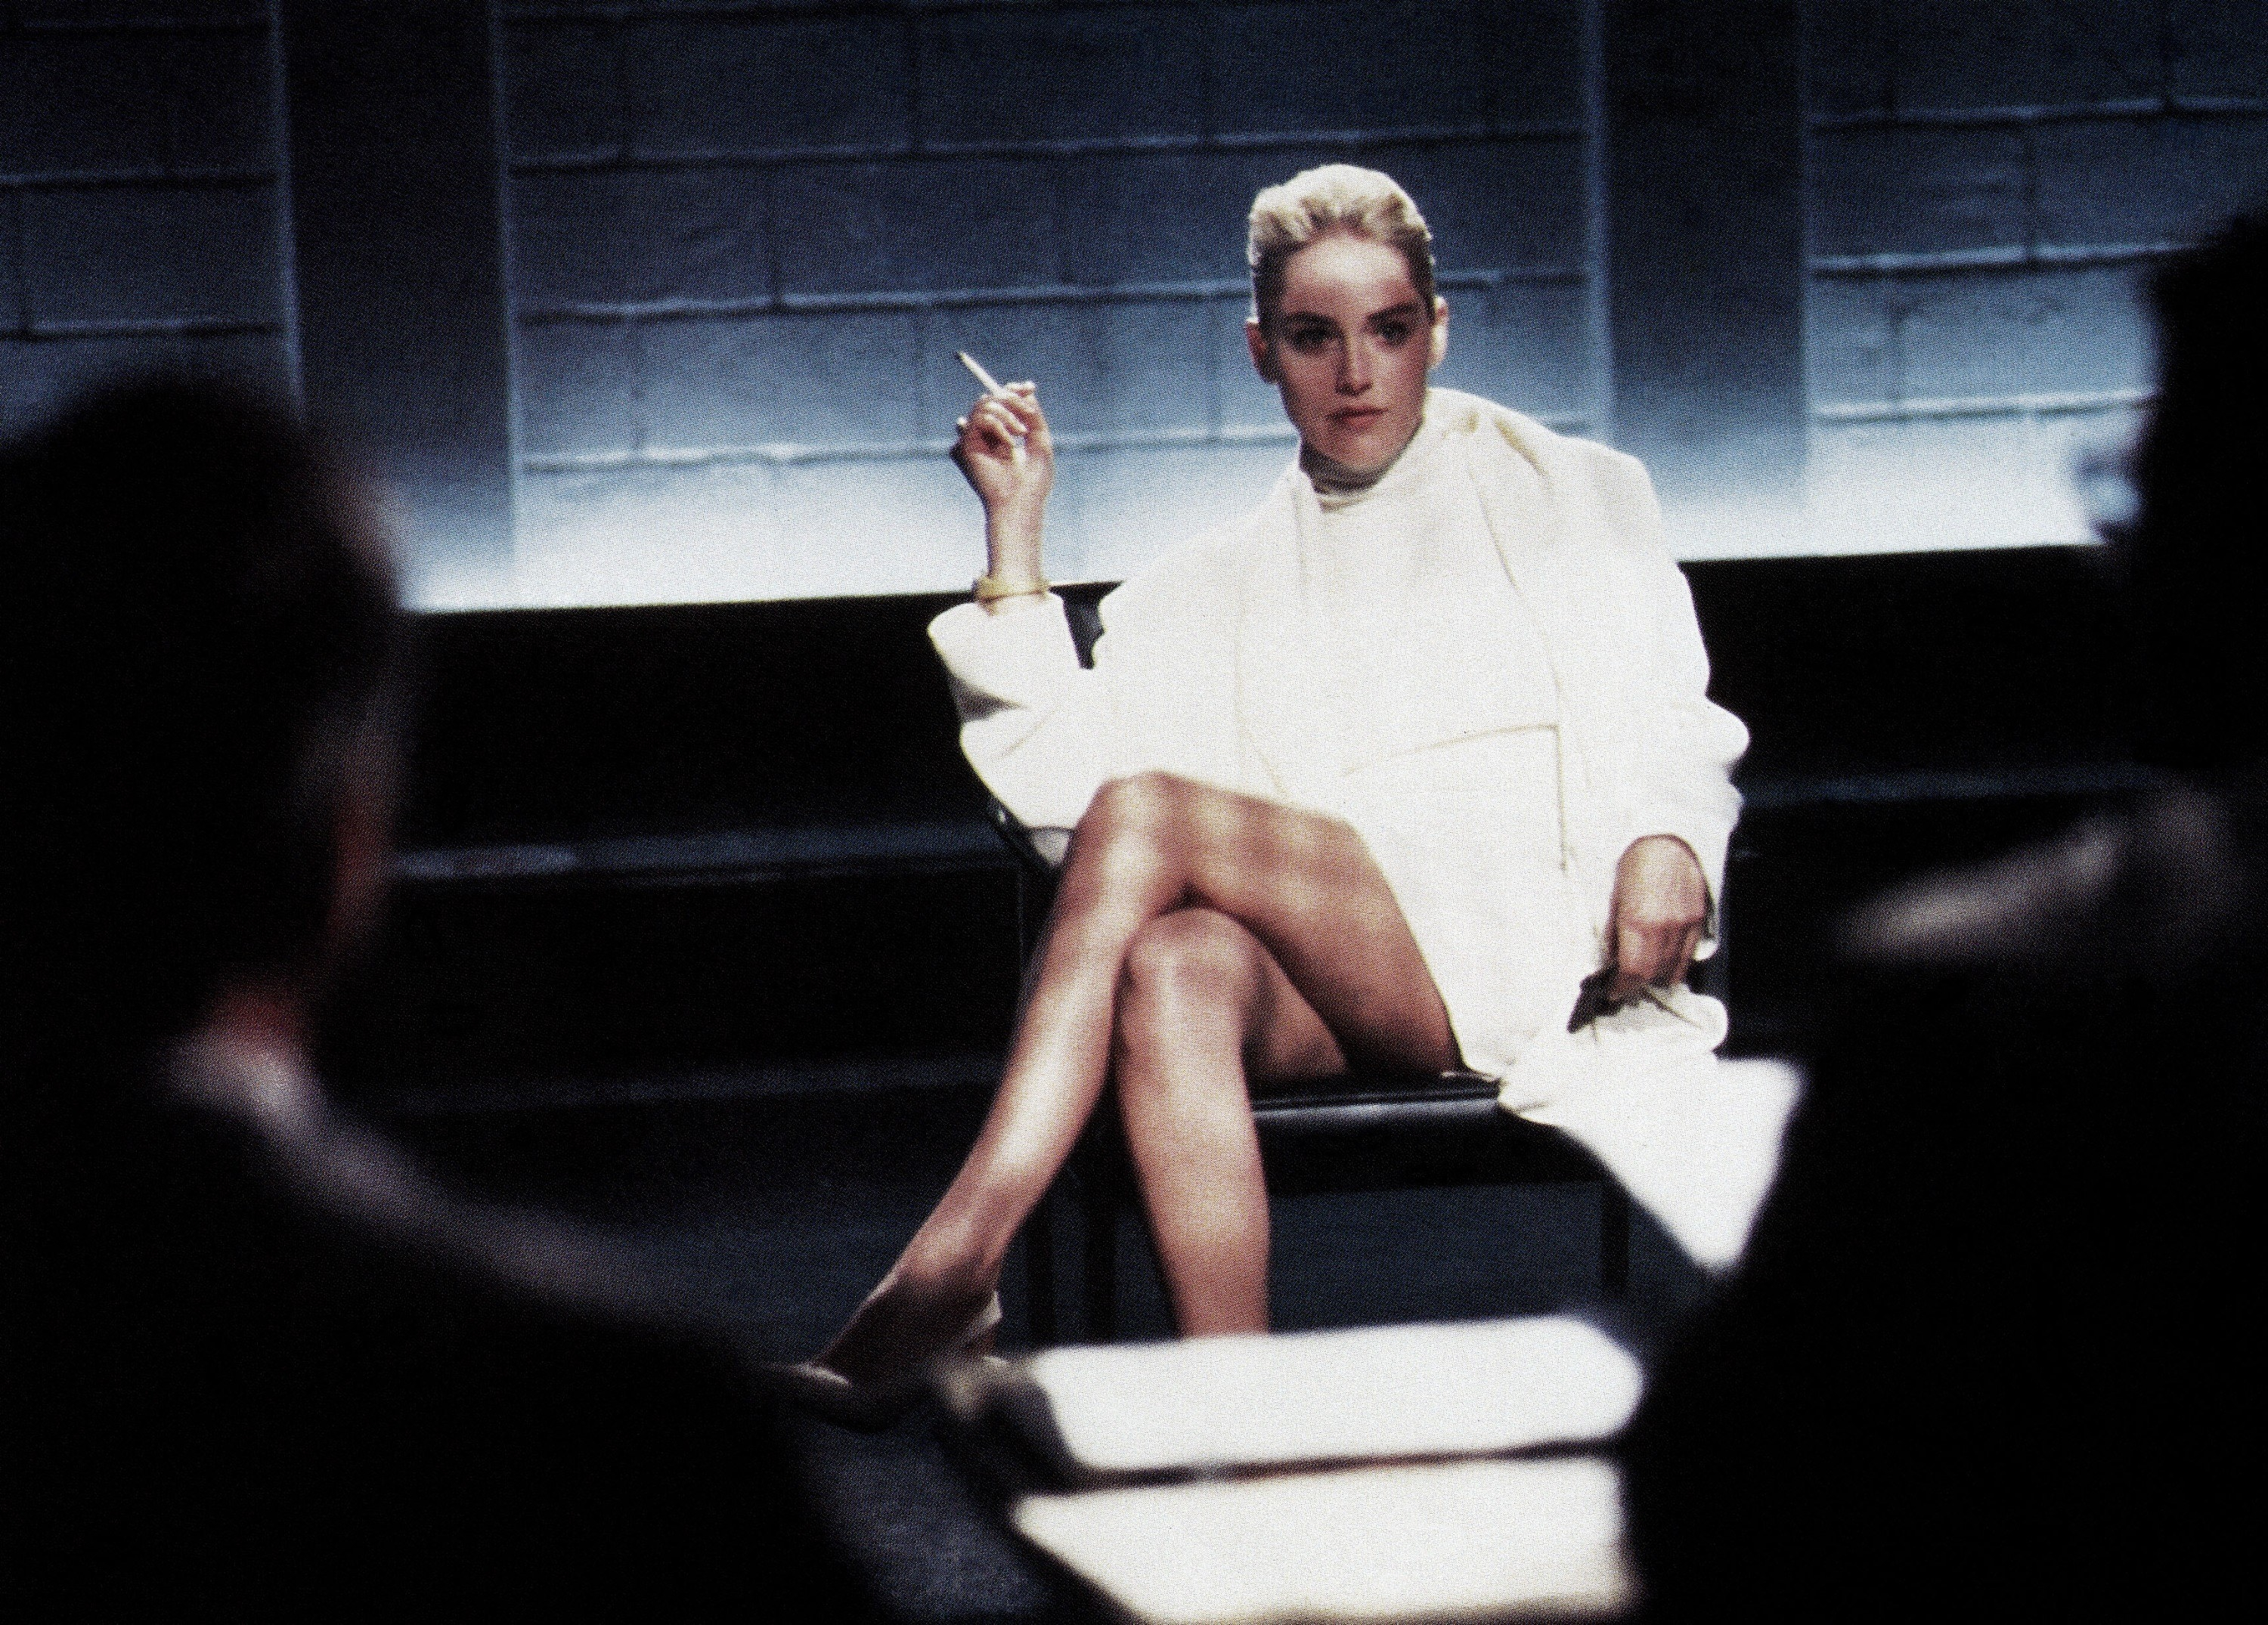 Stone sits with her legs crossed in Basic Instinct